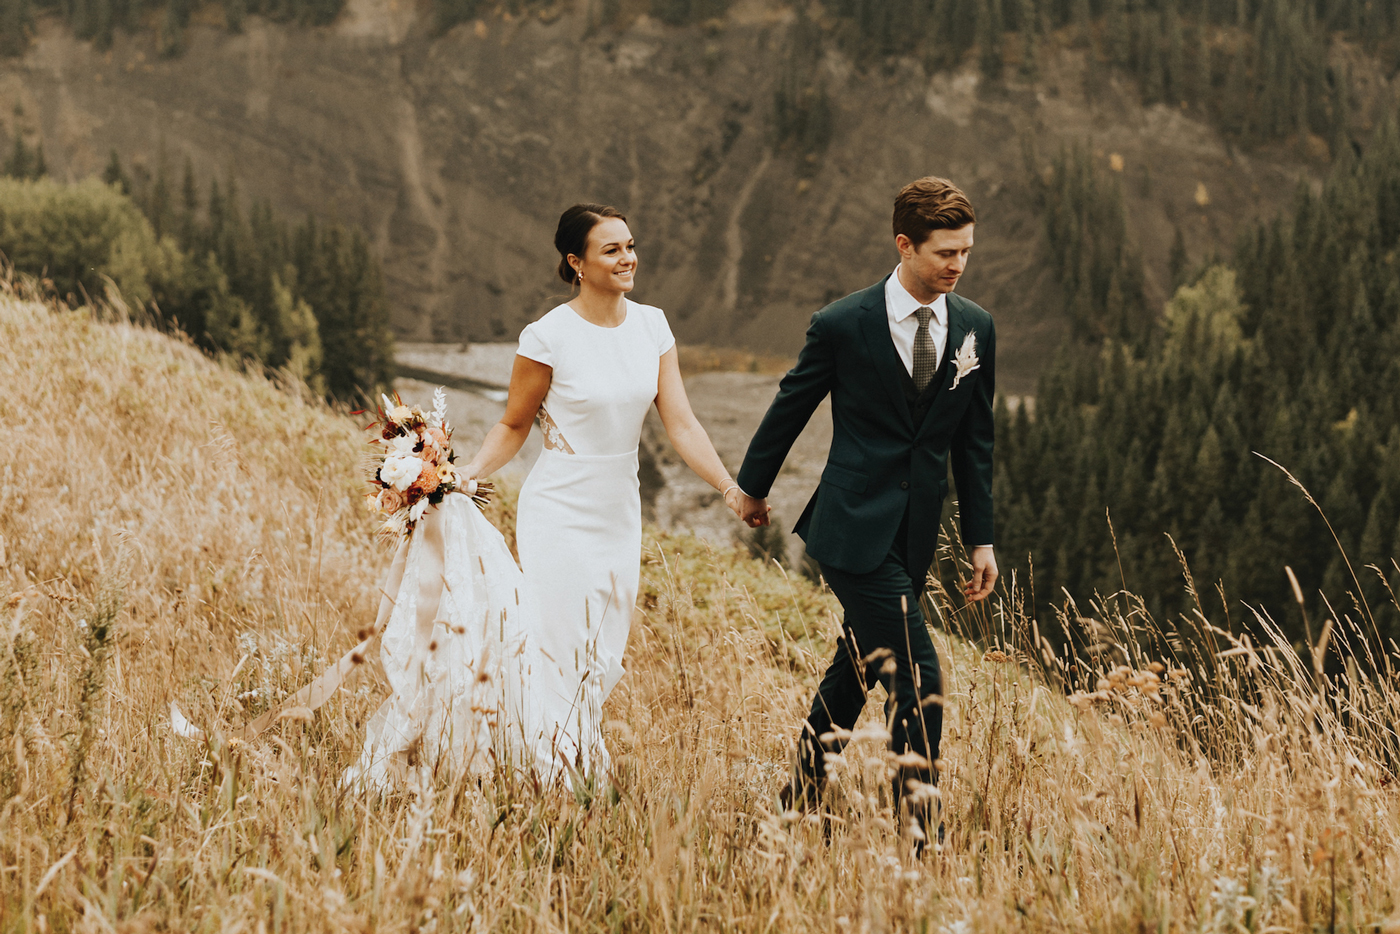 Photograph by Madison Jamie Photography